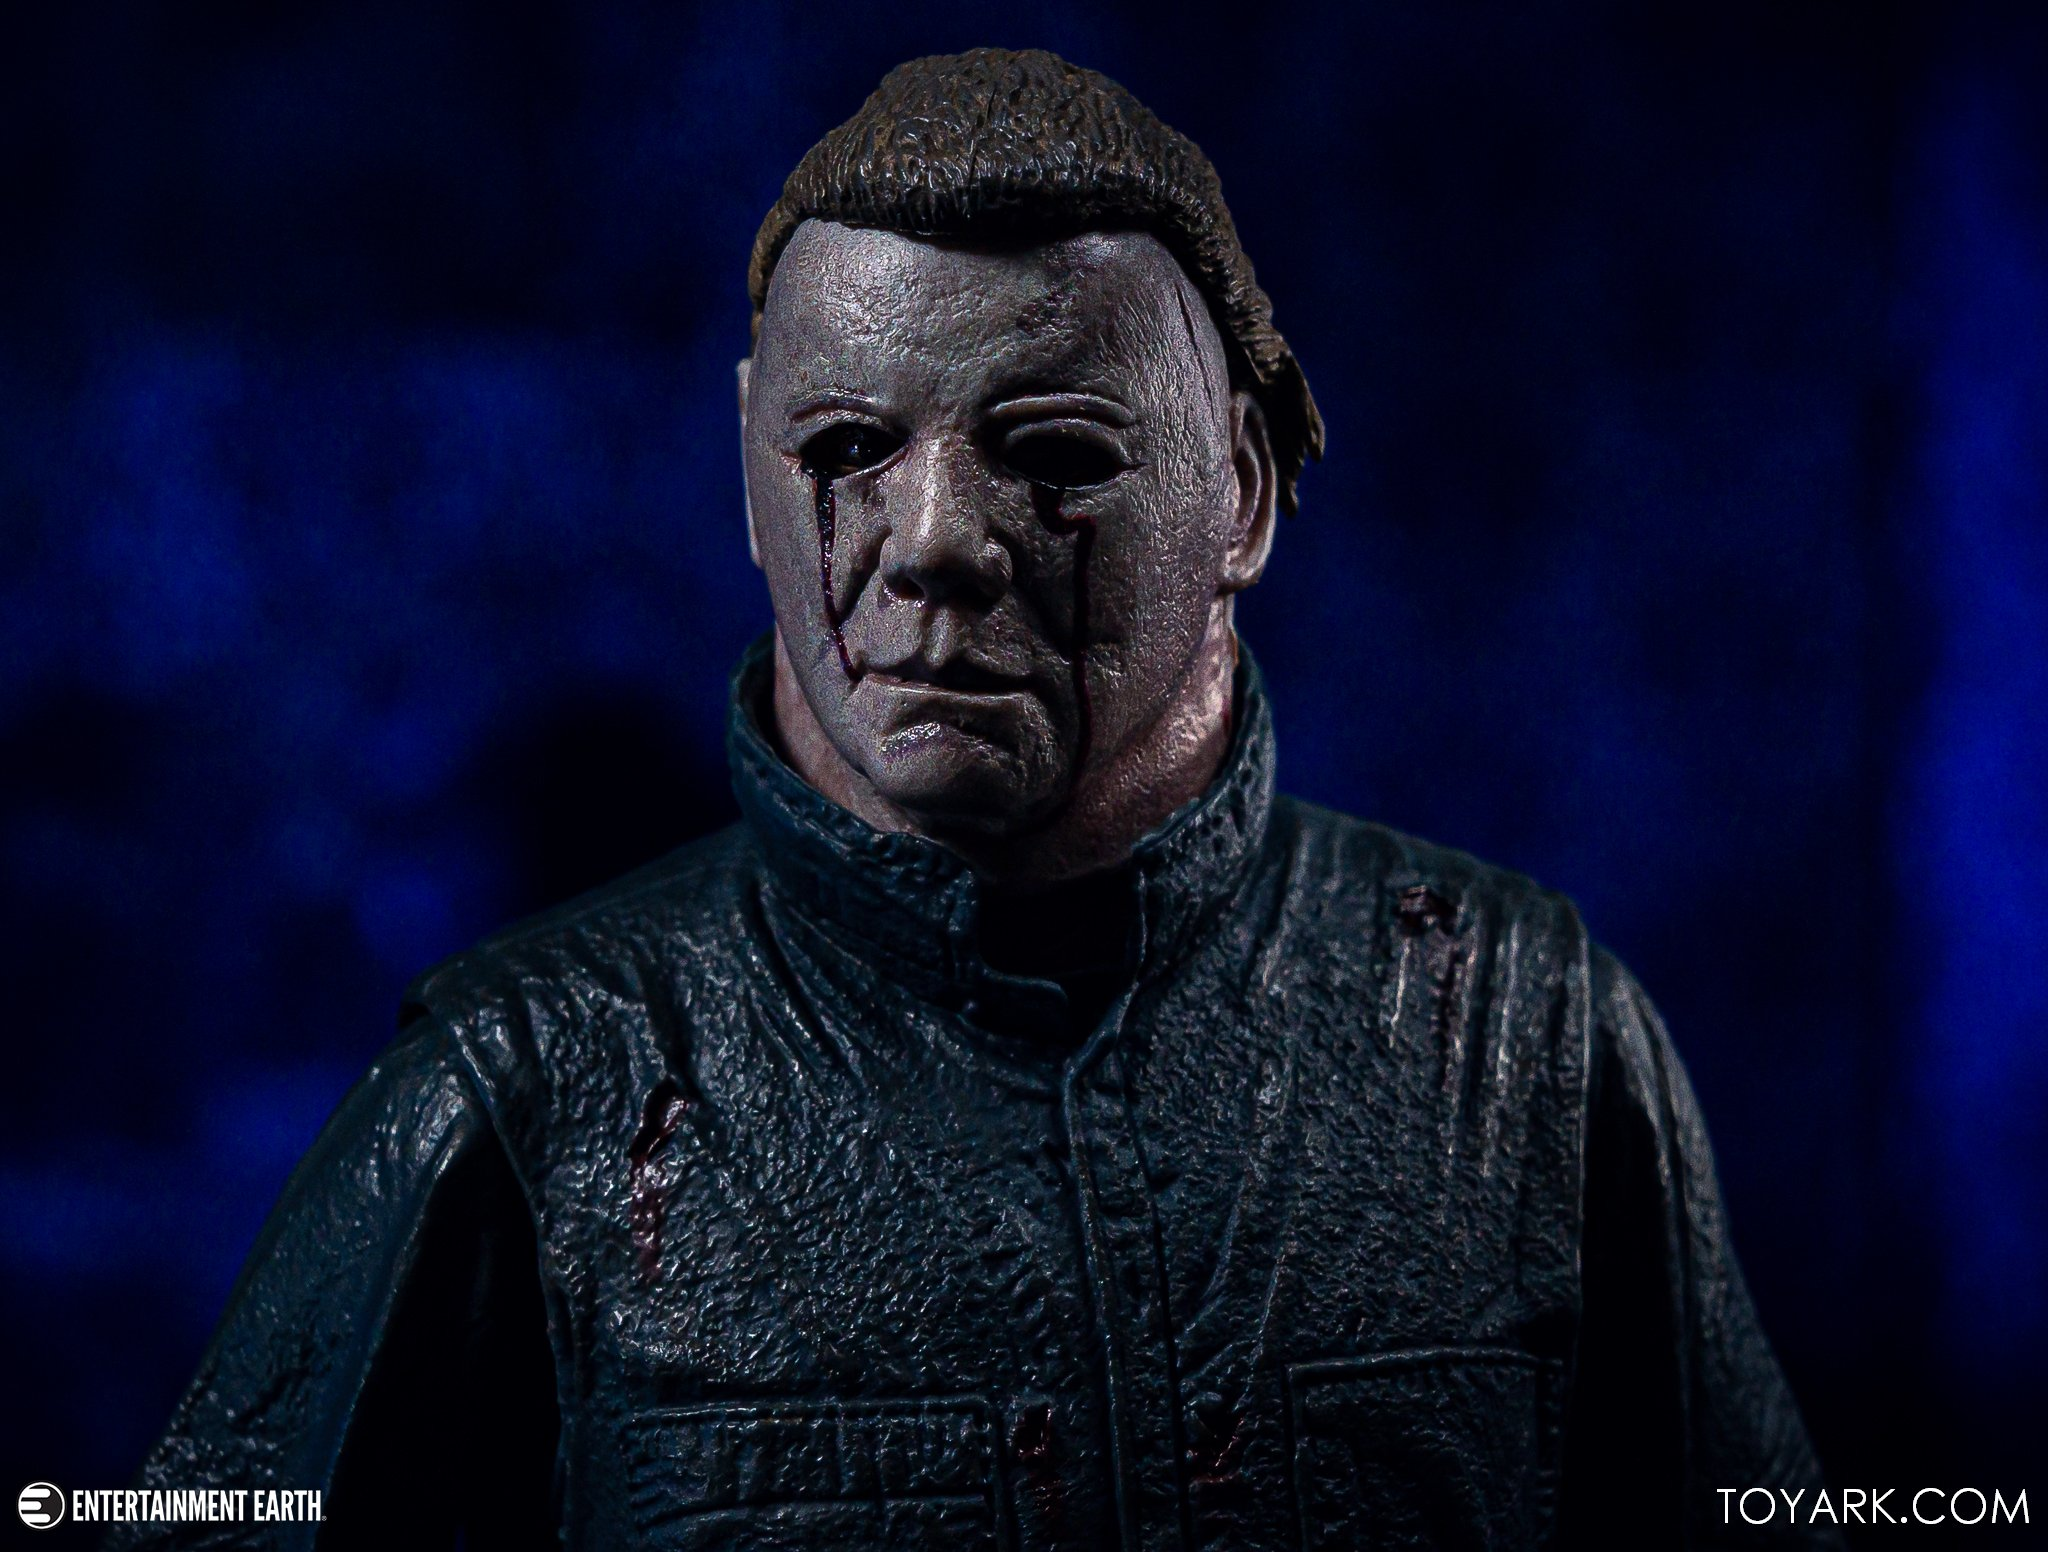 https://news.toyark.com/wp-content/uploads/sites/4/2019/10/NECA-Halloween-II-Michael-Myers-041.jpg